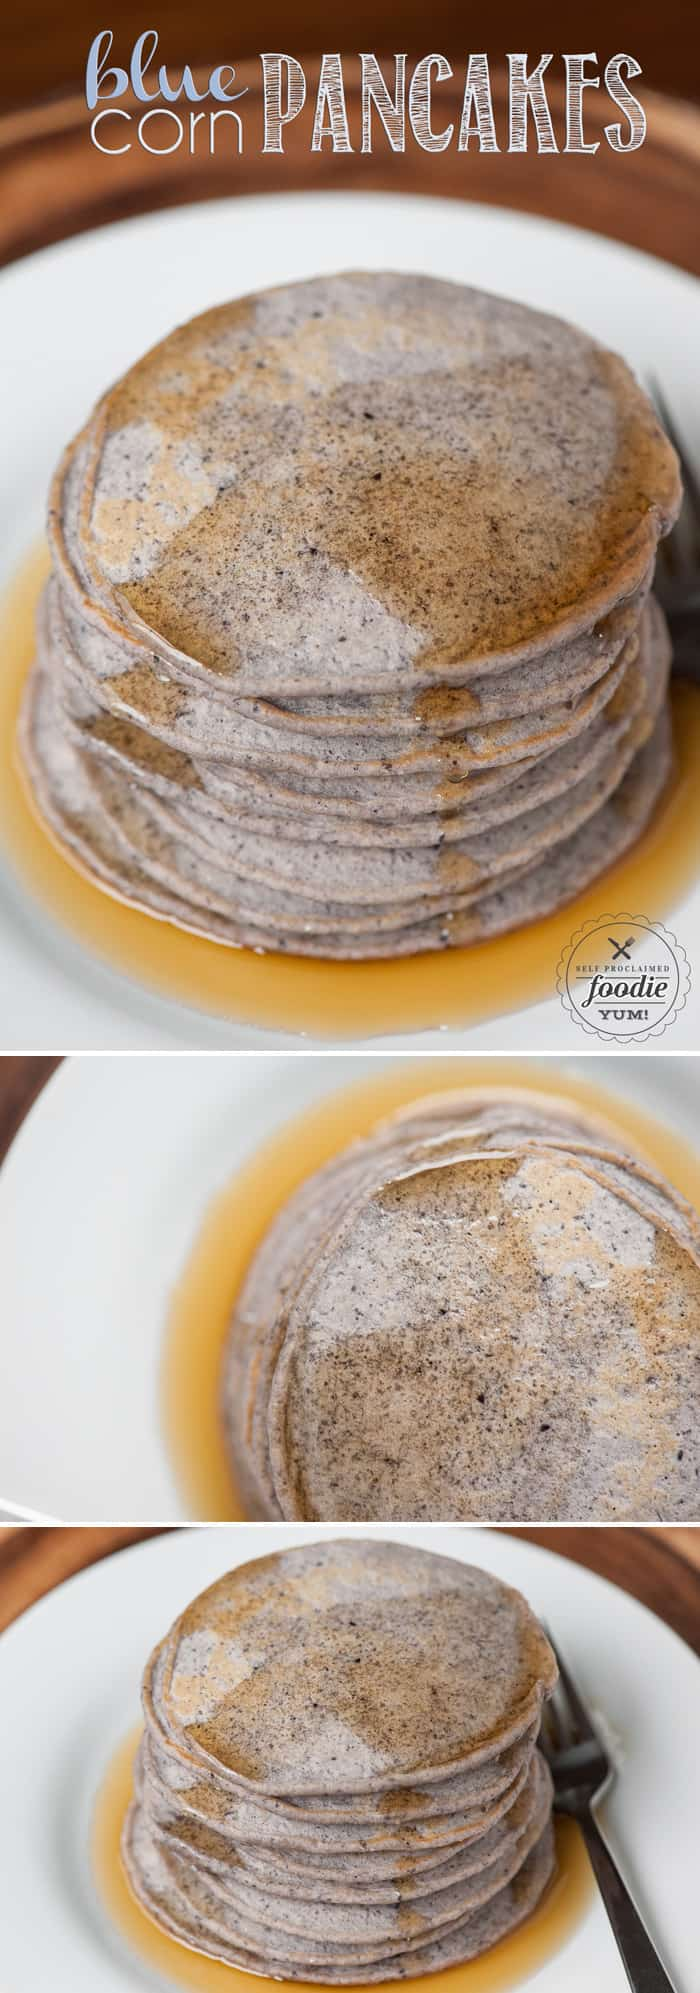 Blue Corn Pancakes are so easy to make and provide a wonderful flavor and gritty texture that is a refreshing change from a standard buttermilk pancake.